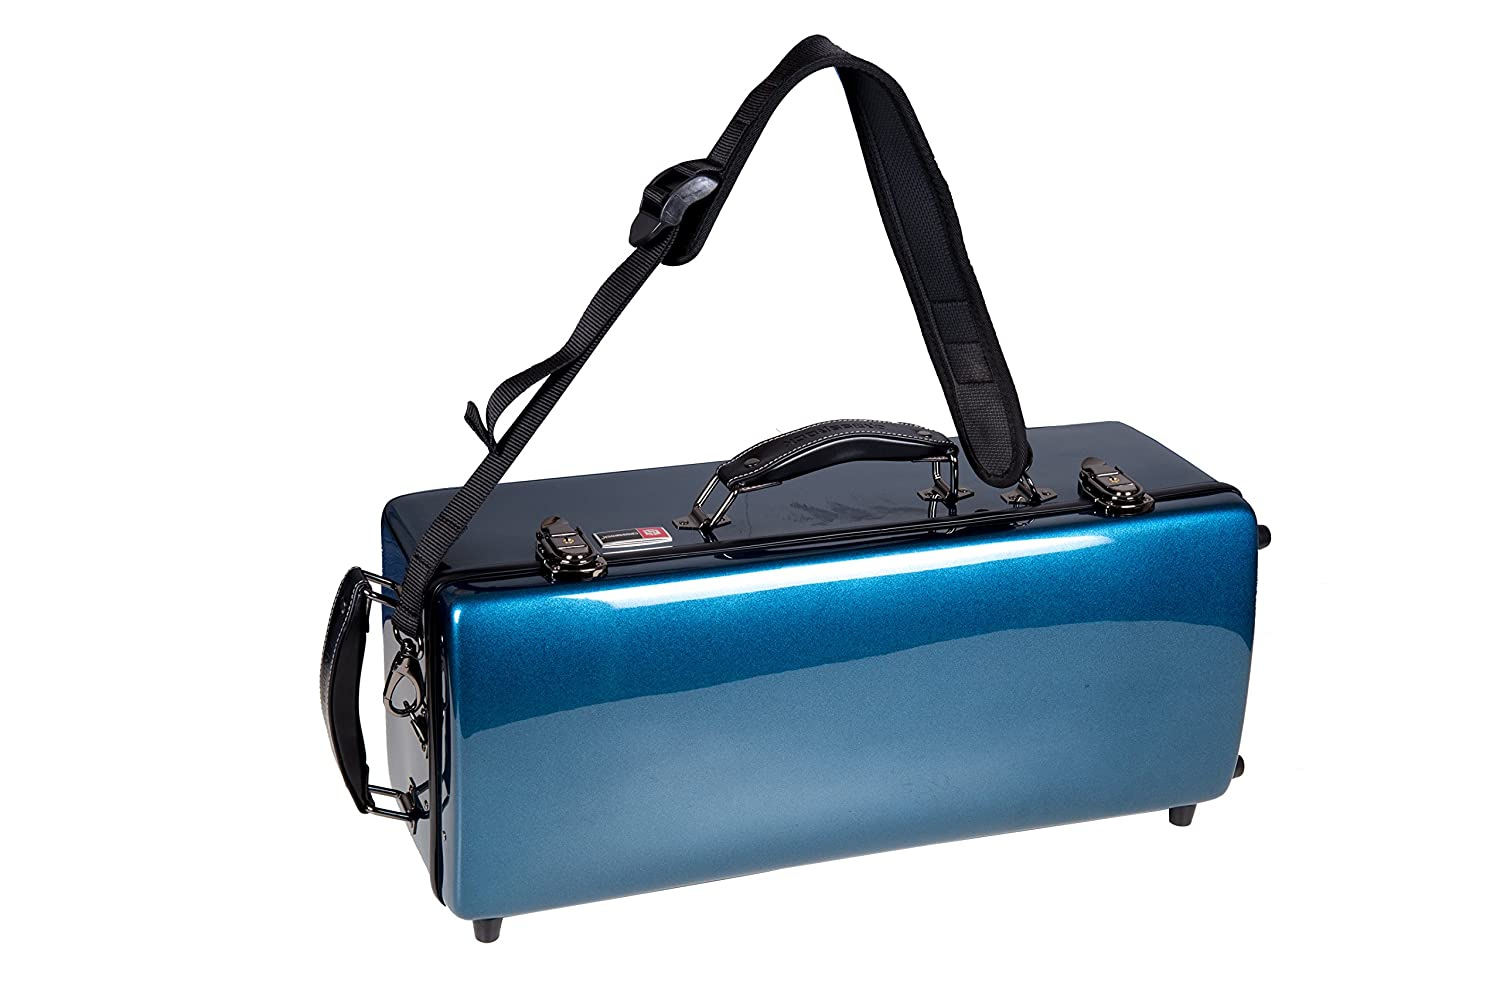 Crossrock CRA860TRBL Trumpet Rectangular ABS Molded Hard Shell Case with Single Shoulder Strap in Blue Crossrock Case Company